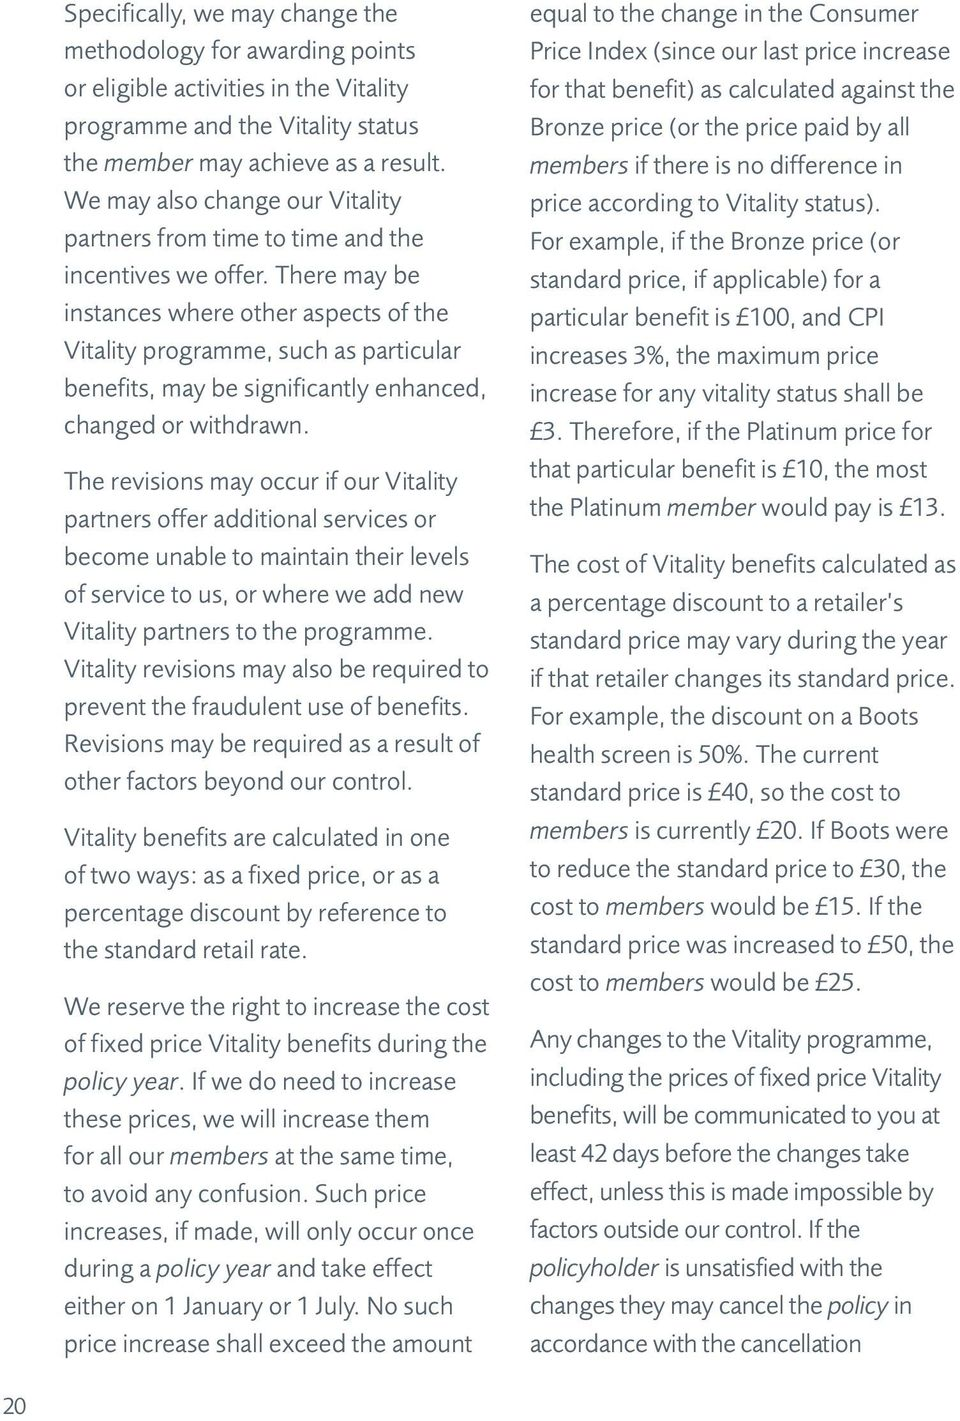 There may be instances where other aspects of the Vitality programme, such as particular benefits, may be significantly enhanced, changed or withdrawn.